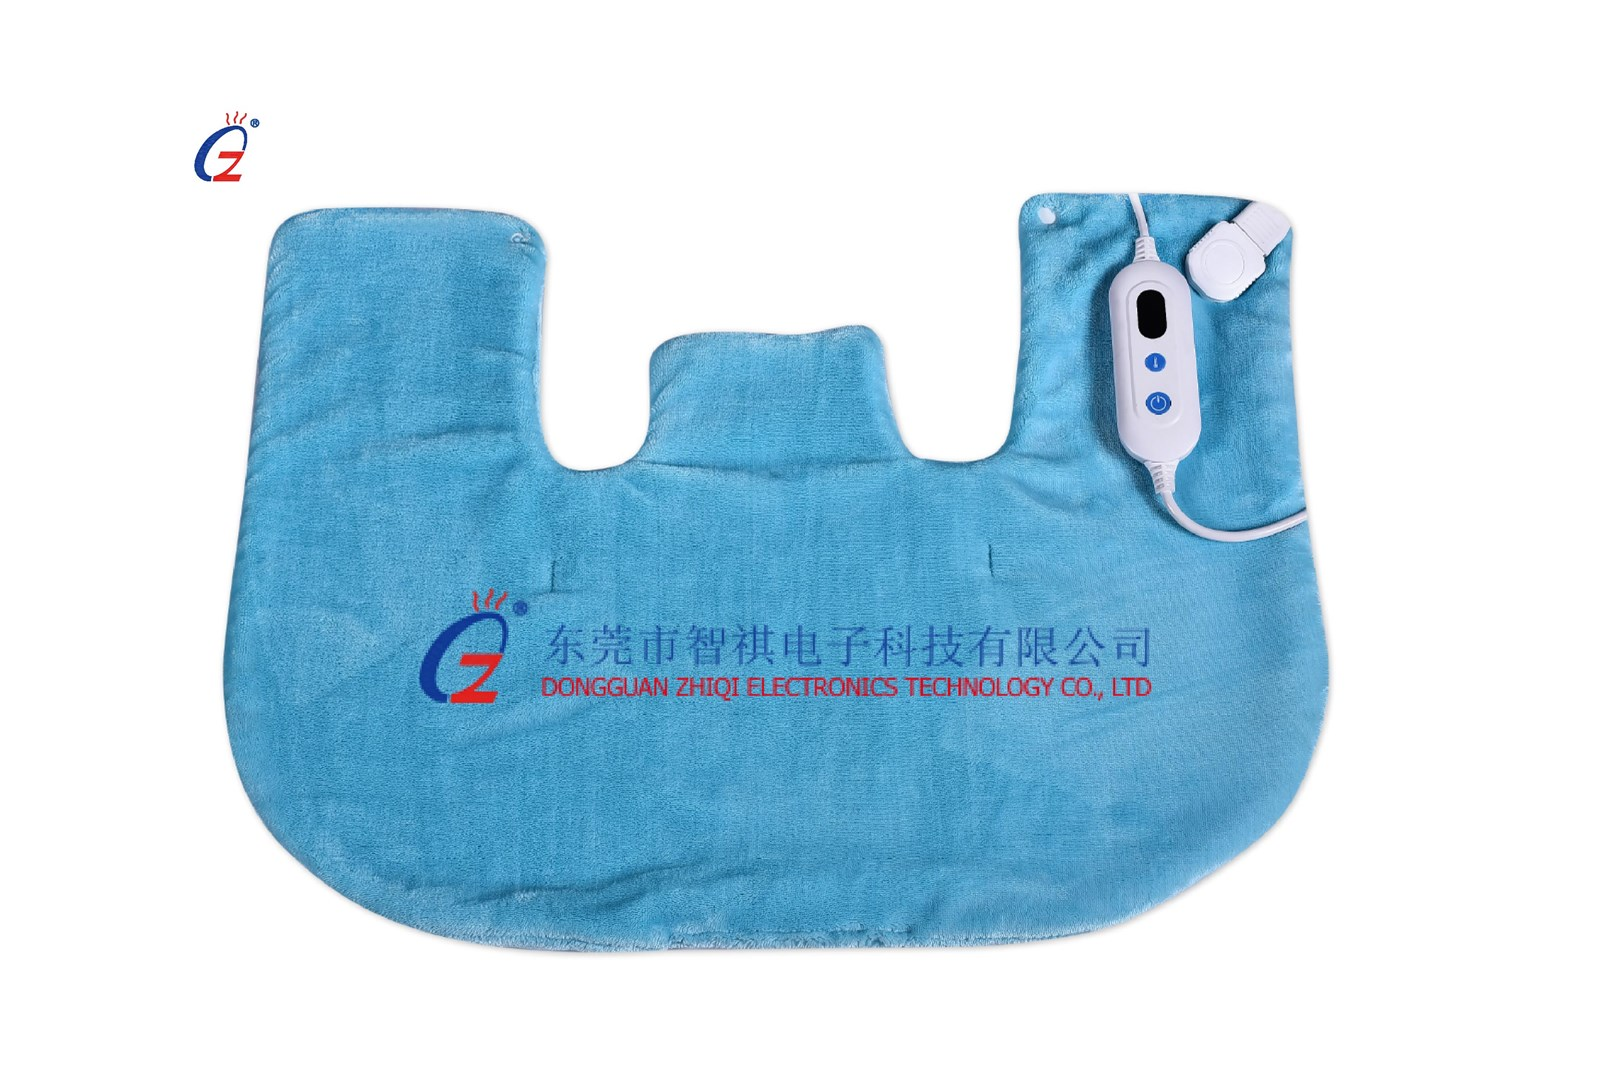 60x62cm electric shoulder heat pad for Germany